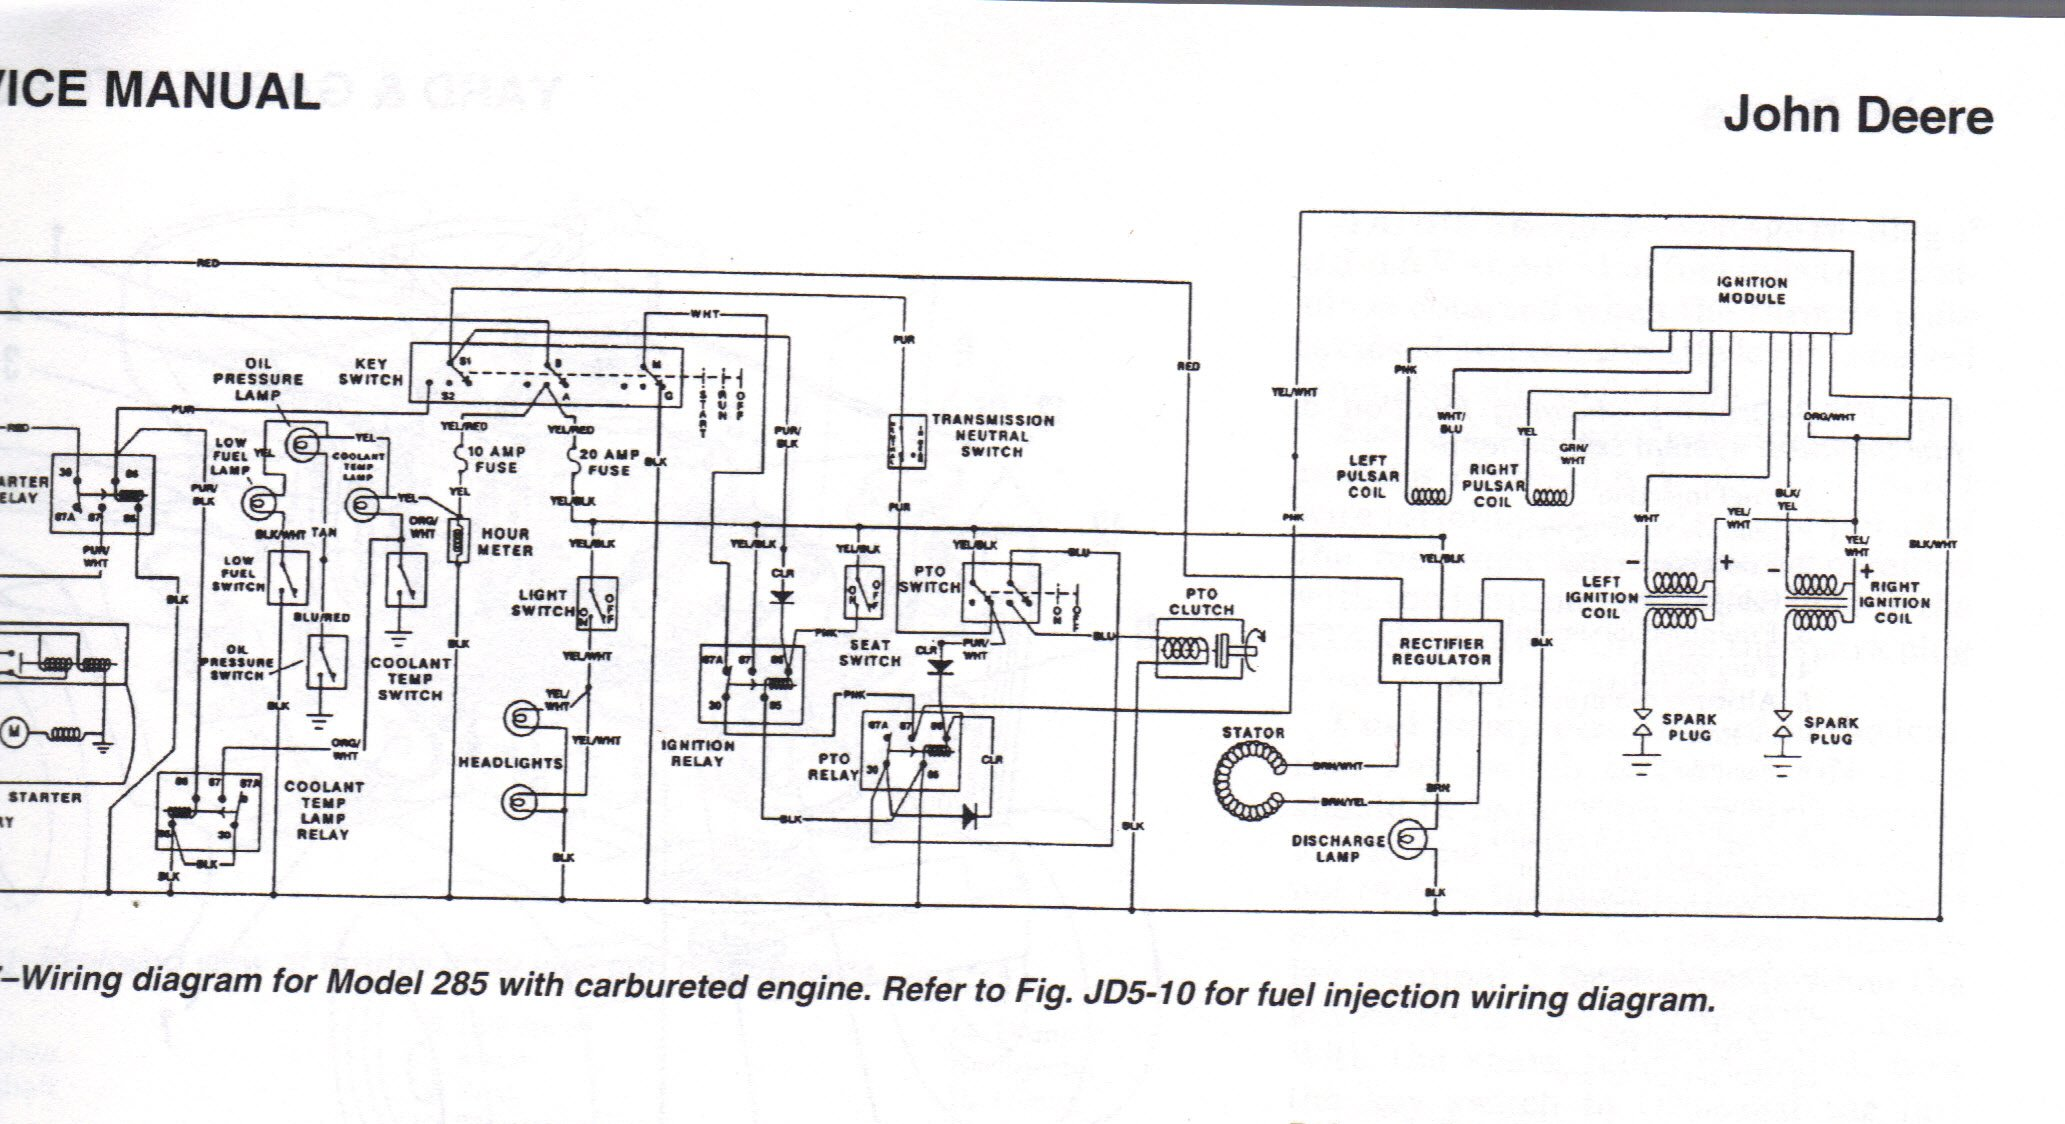 Limitorque L120 Wiring 10 Free Diagram For You Liberty Fuel Injector Harness Download Schematic Simple Diagrams Rh 30 Studio011 De 20 Parts Drawings